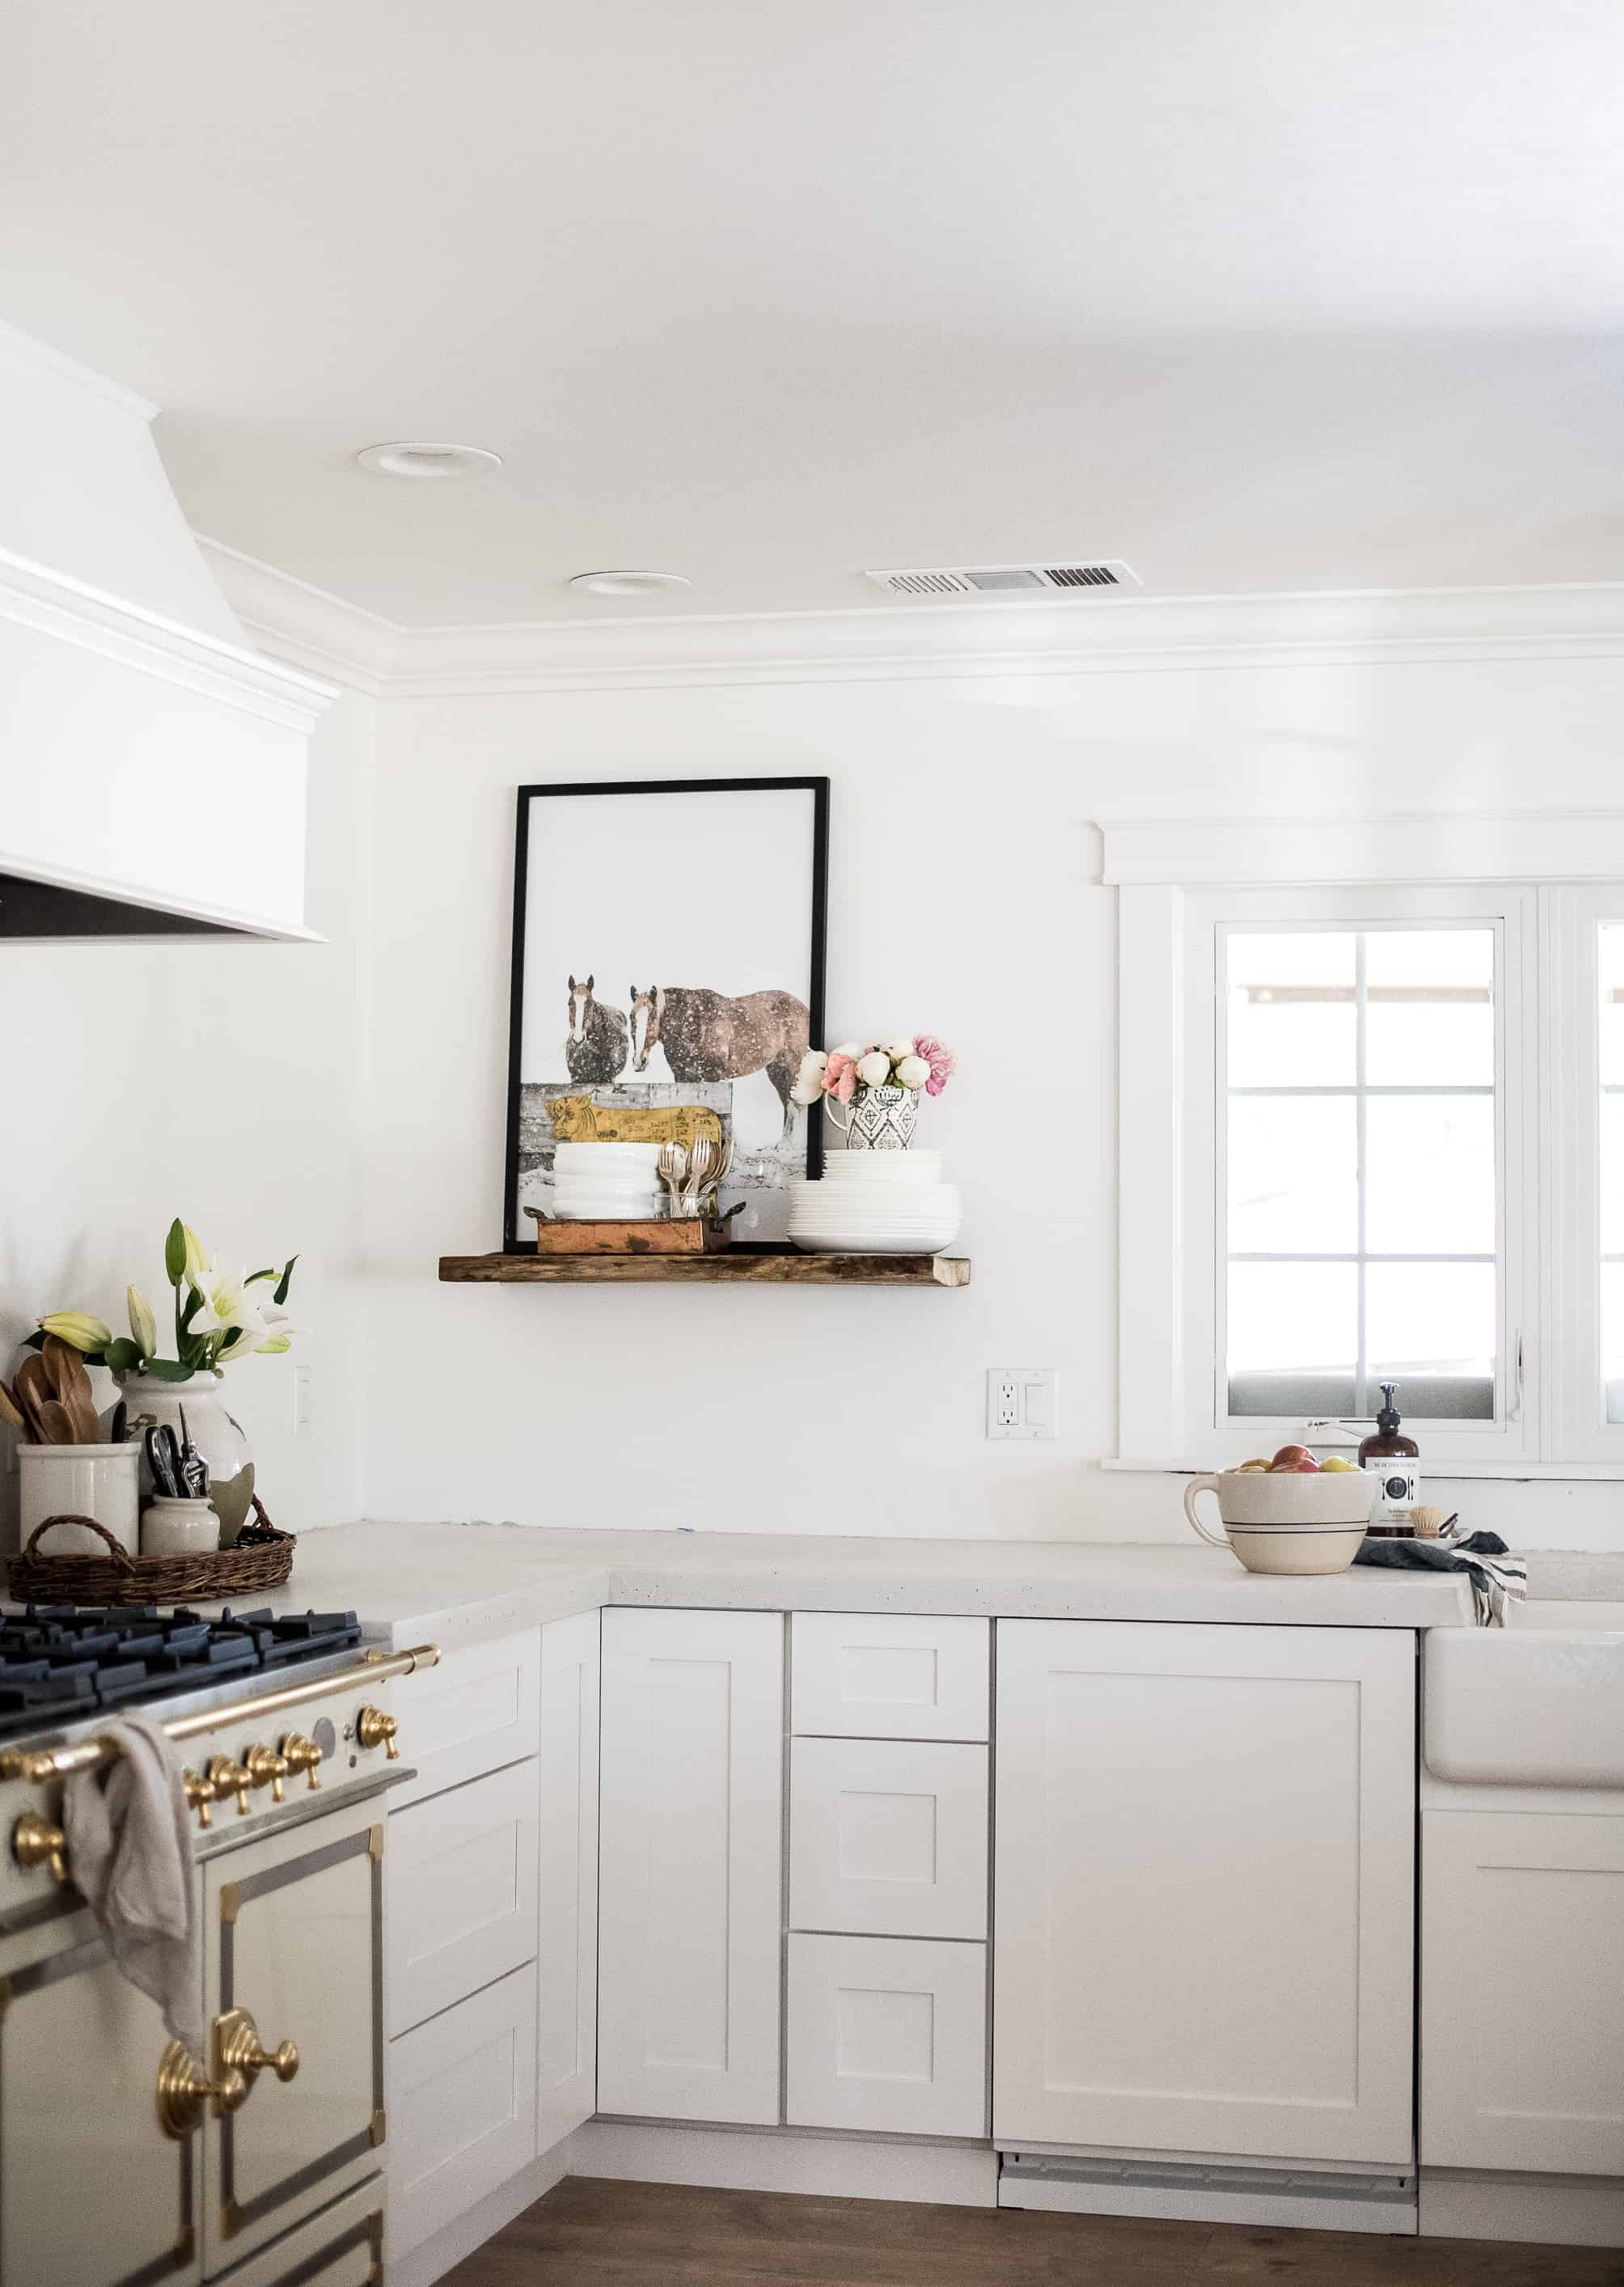 A peek into our almost finished kitchen! Join me for the Simply Summer home tour and visit 20 other blogging friends' summer homes!